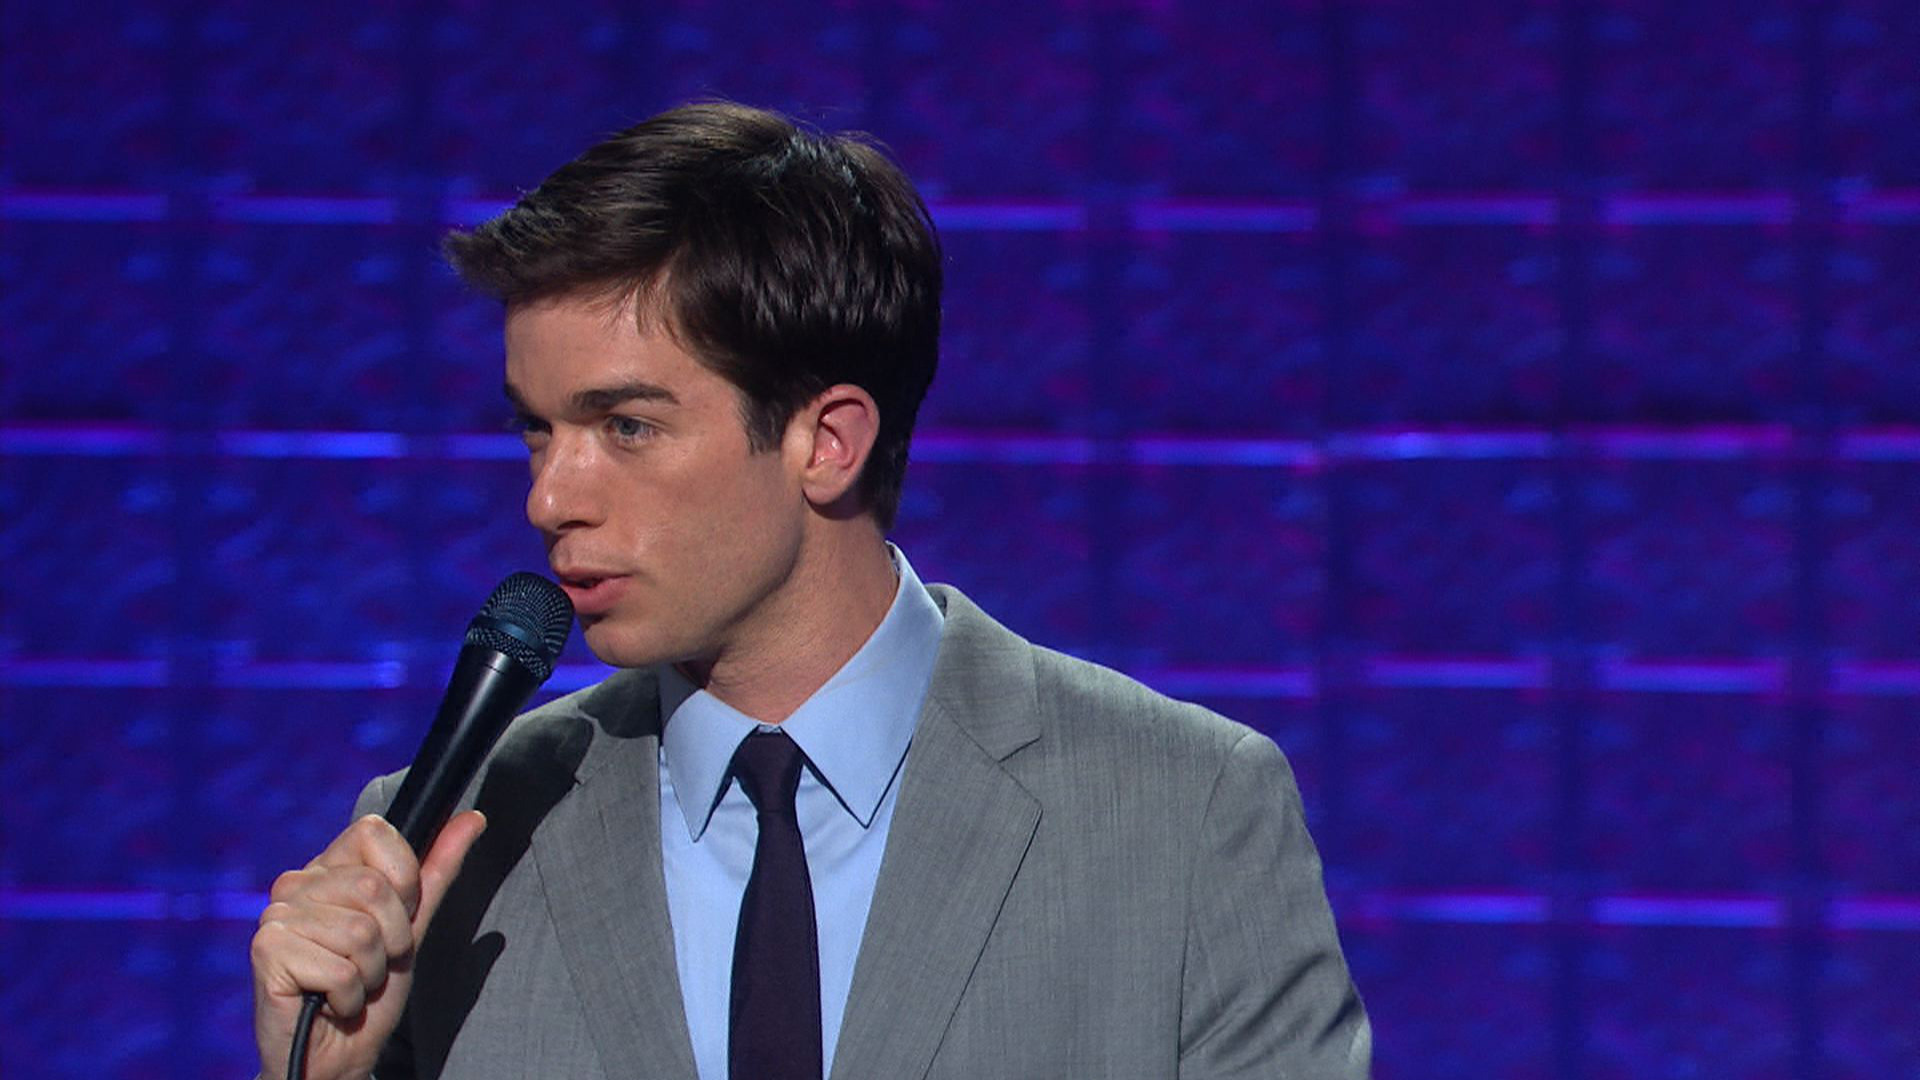 John Mulaney - High School Party